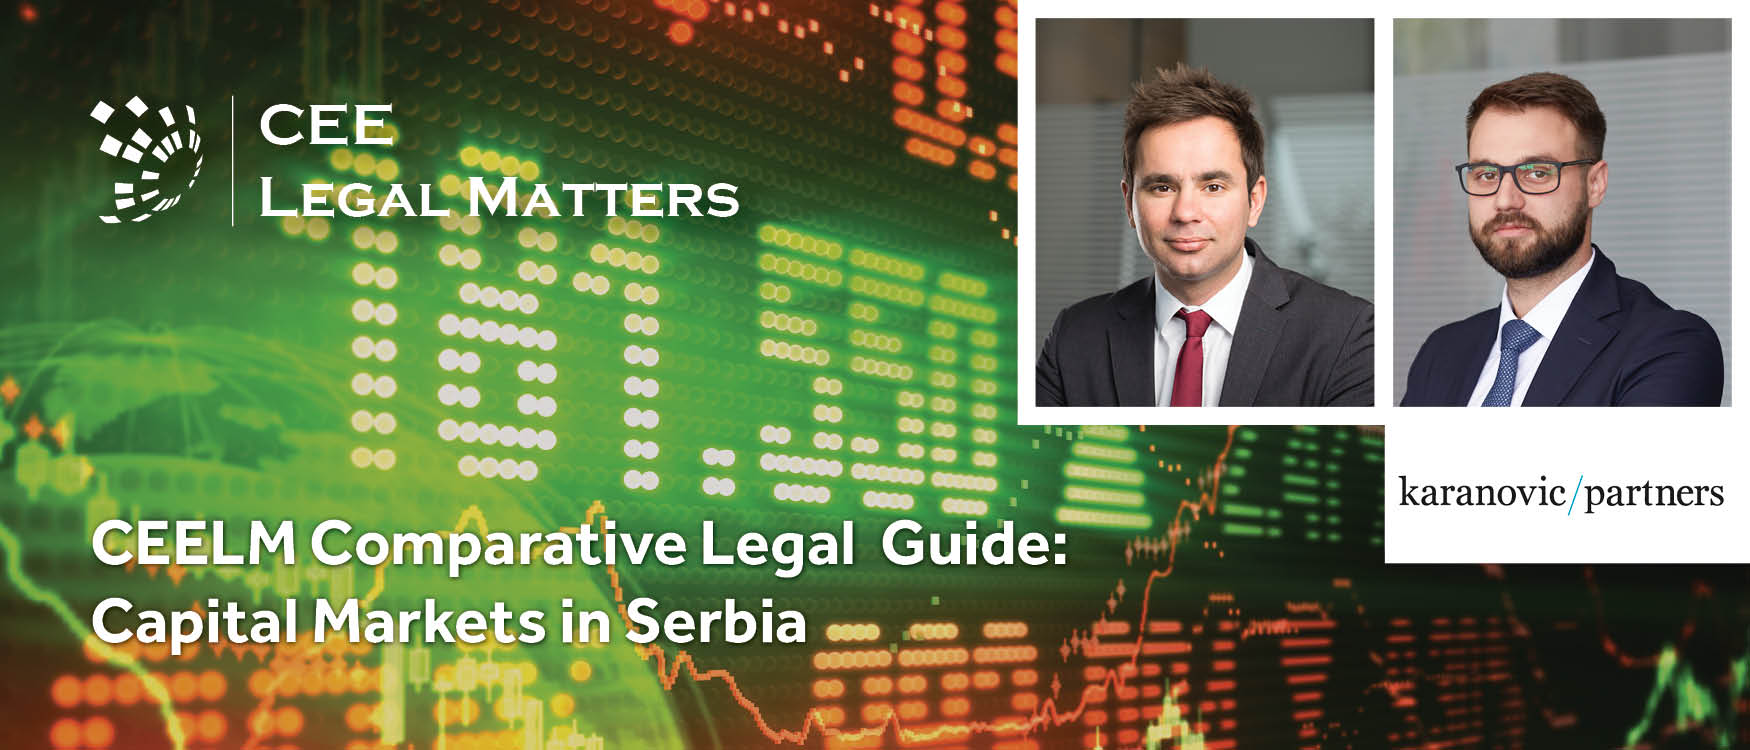 Capital Markets in Serbia